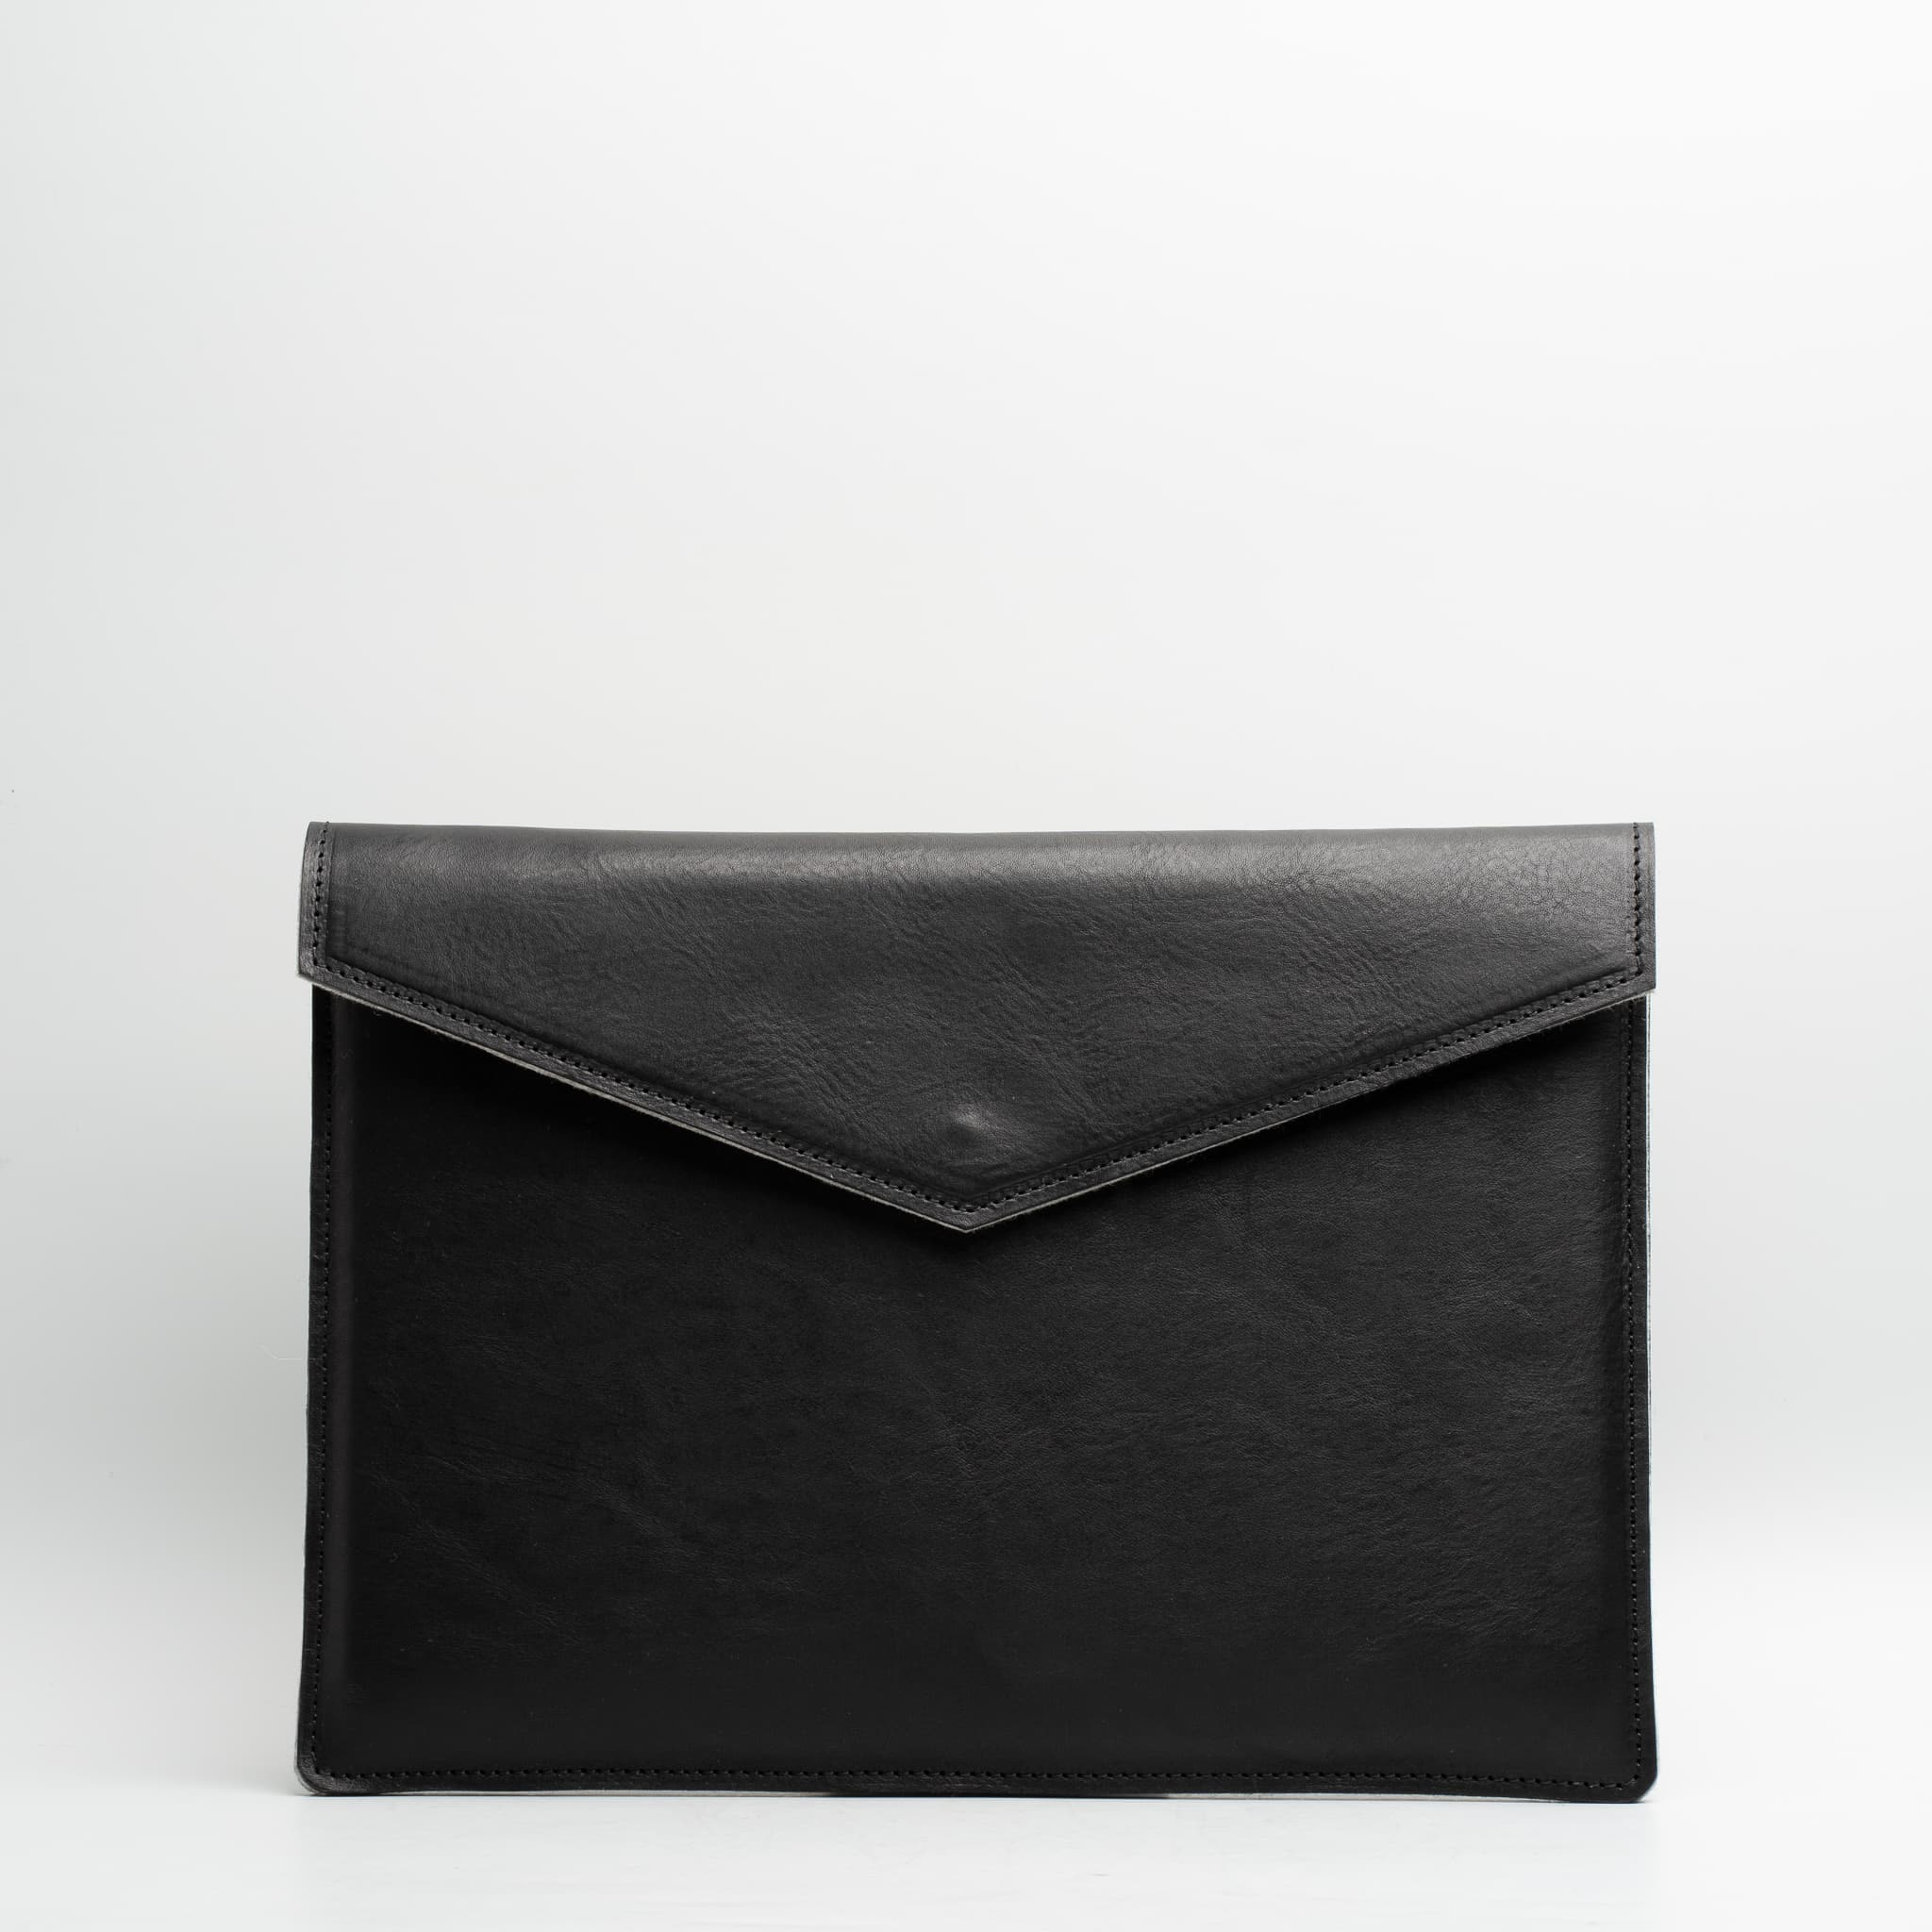 black leather macbook air sleeve.jpg